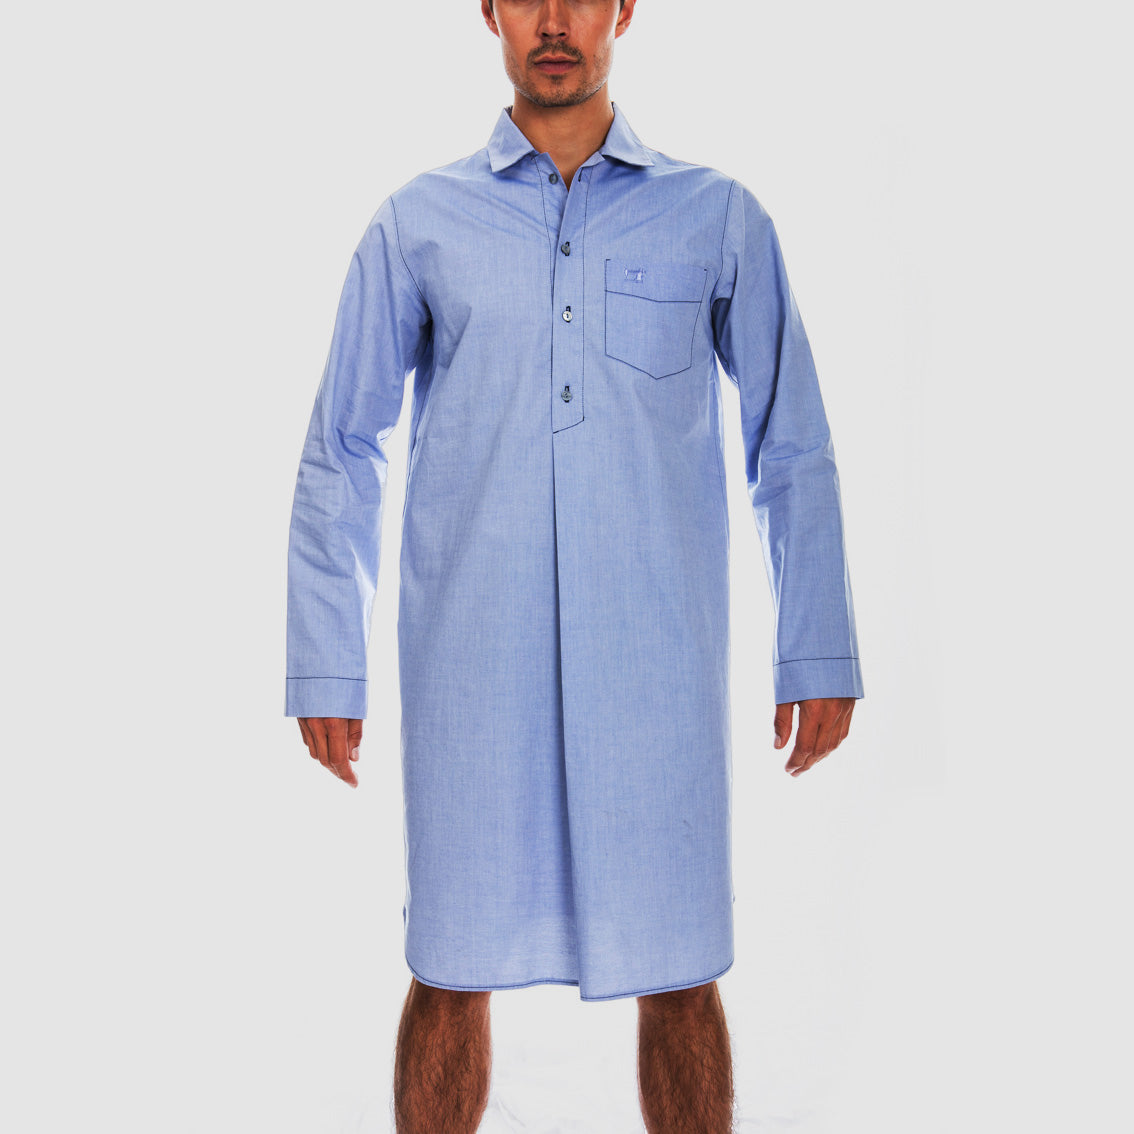 Mens Traditional Sleep Shirts